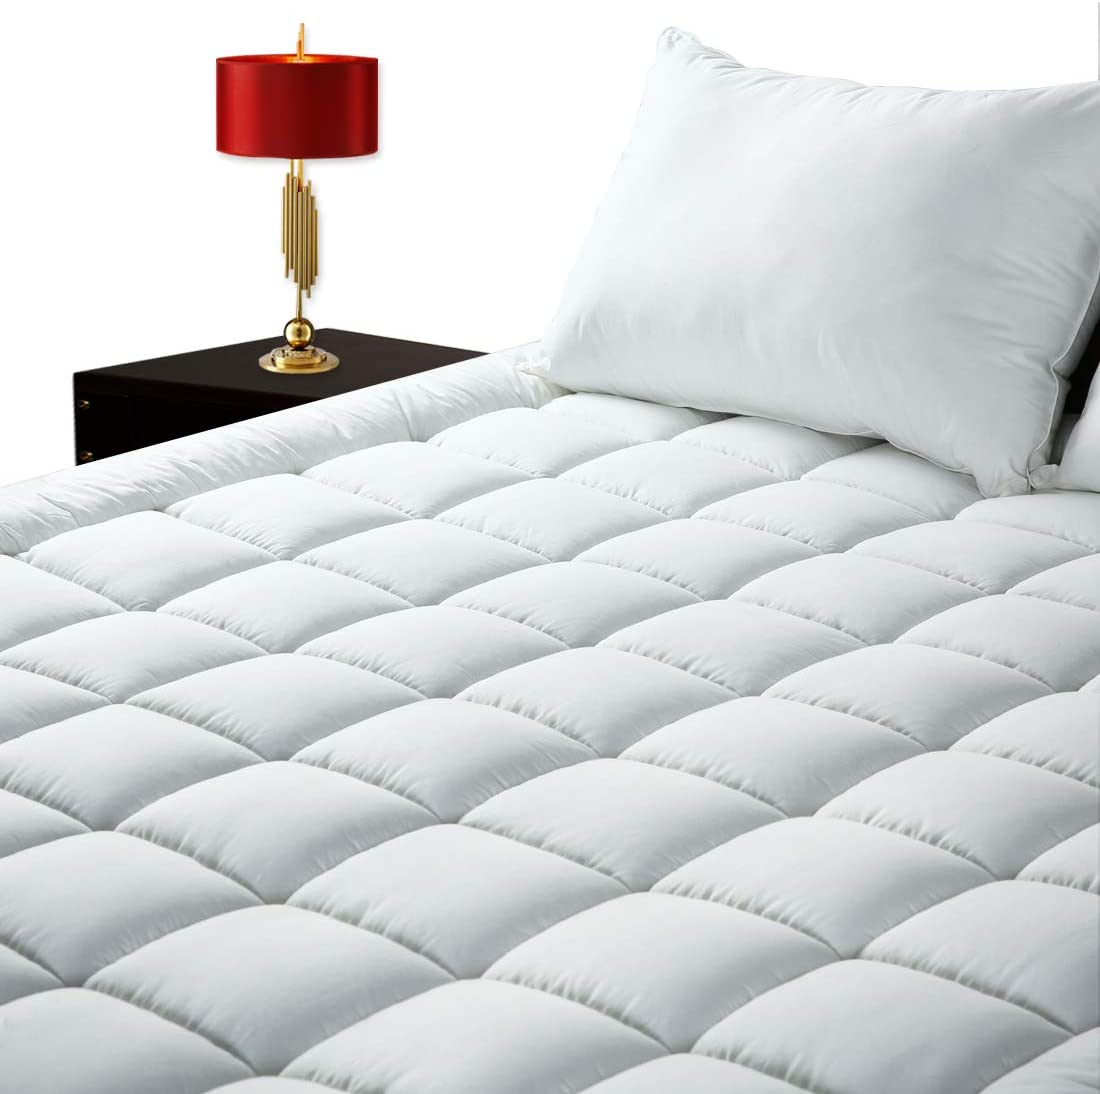 GOPOONY Ultra Soft King Size Mattress Pad Quilted Mattress Padding Topper Cover 400 TC Cotton Top Deep Pocket 8